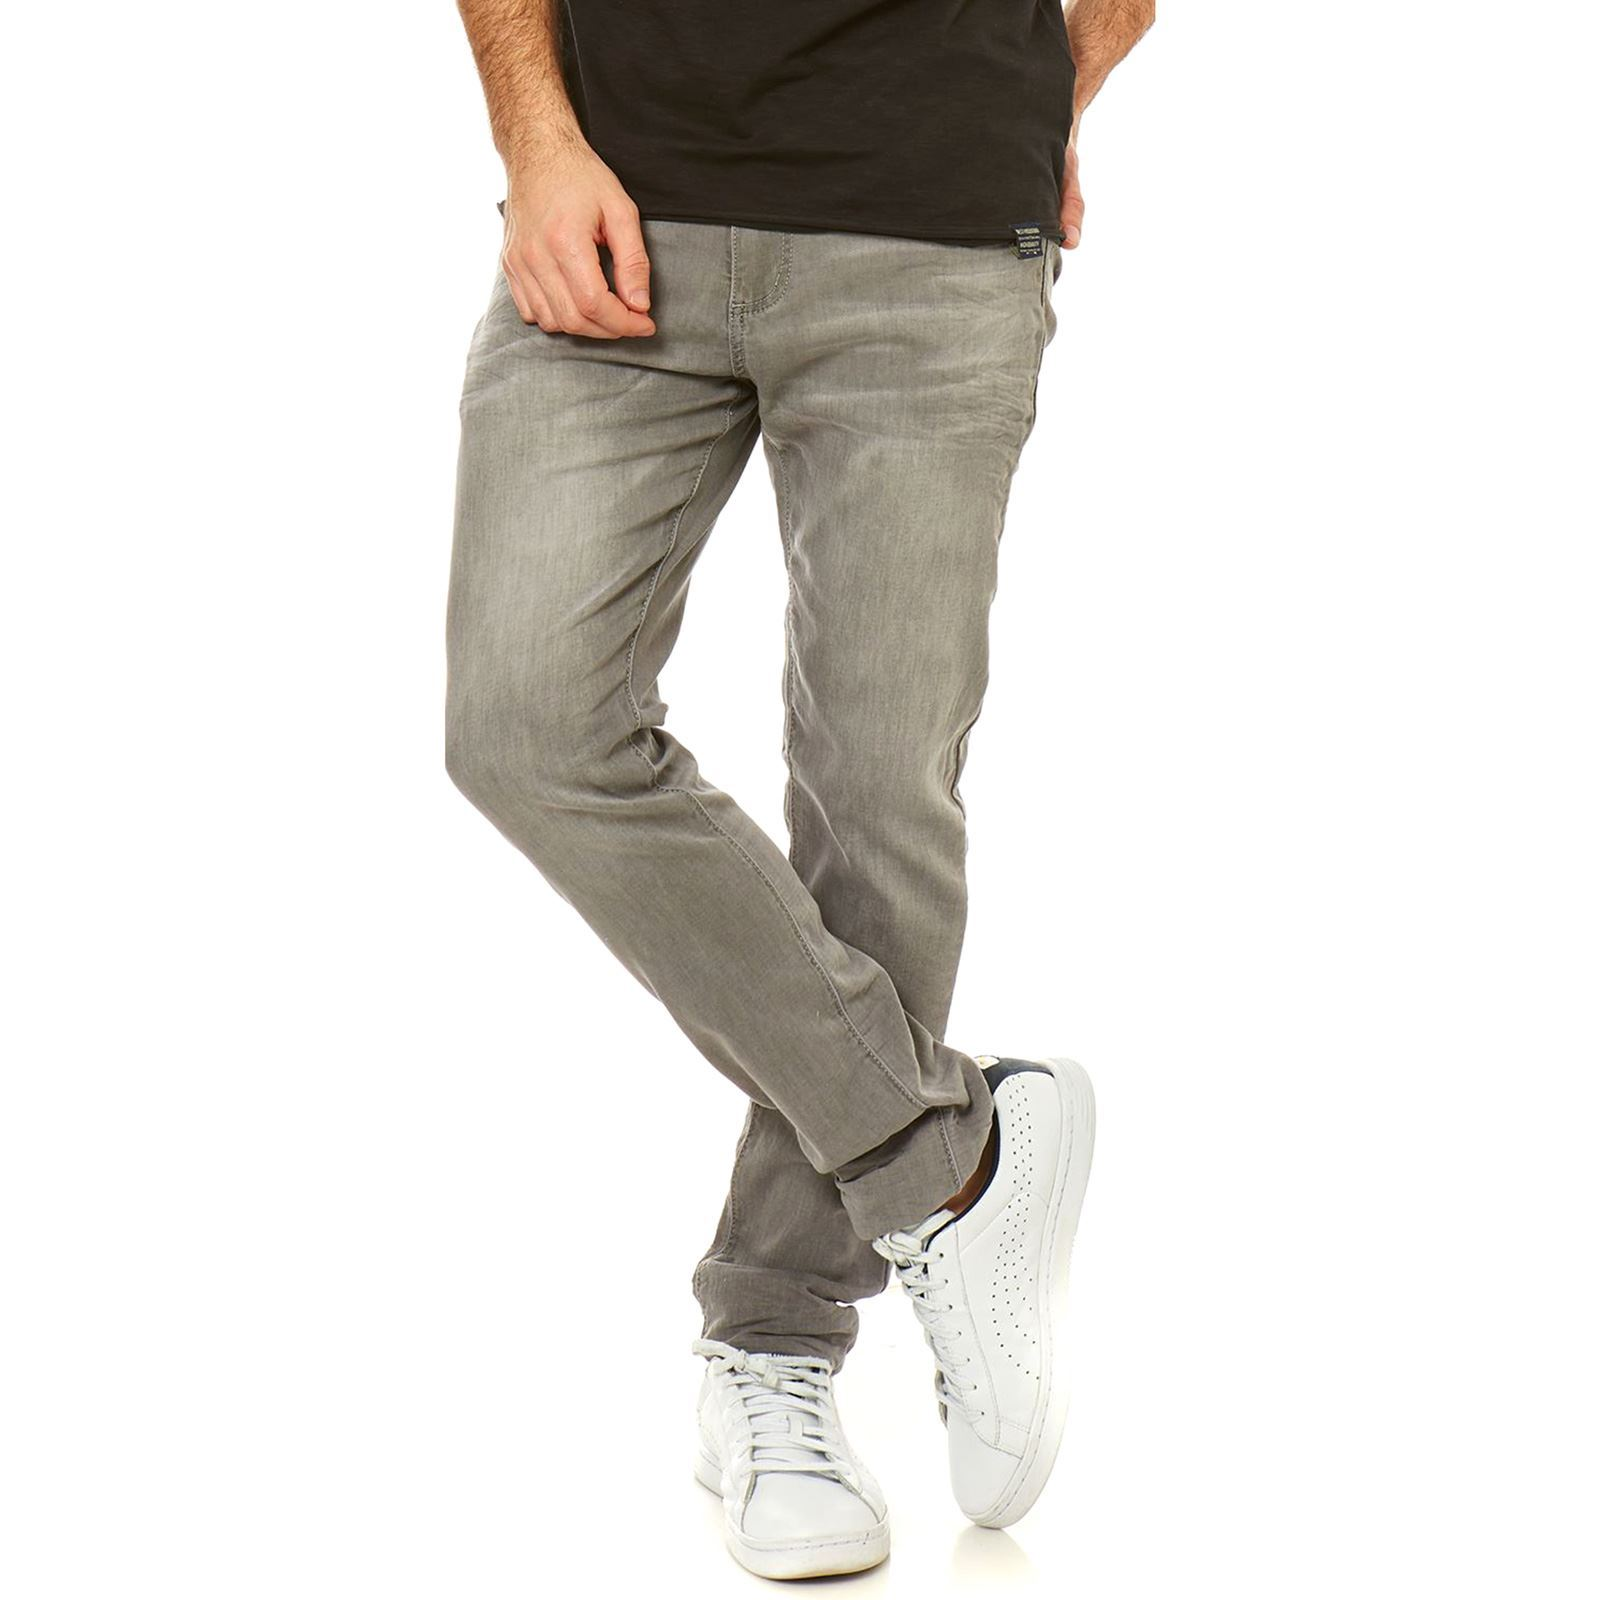 JEAN SKINNY - GRIS The Queen of Quality Best Mountain - Pantalones BOSEMPB